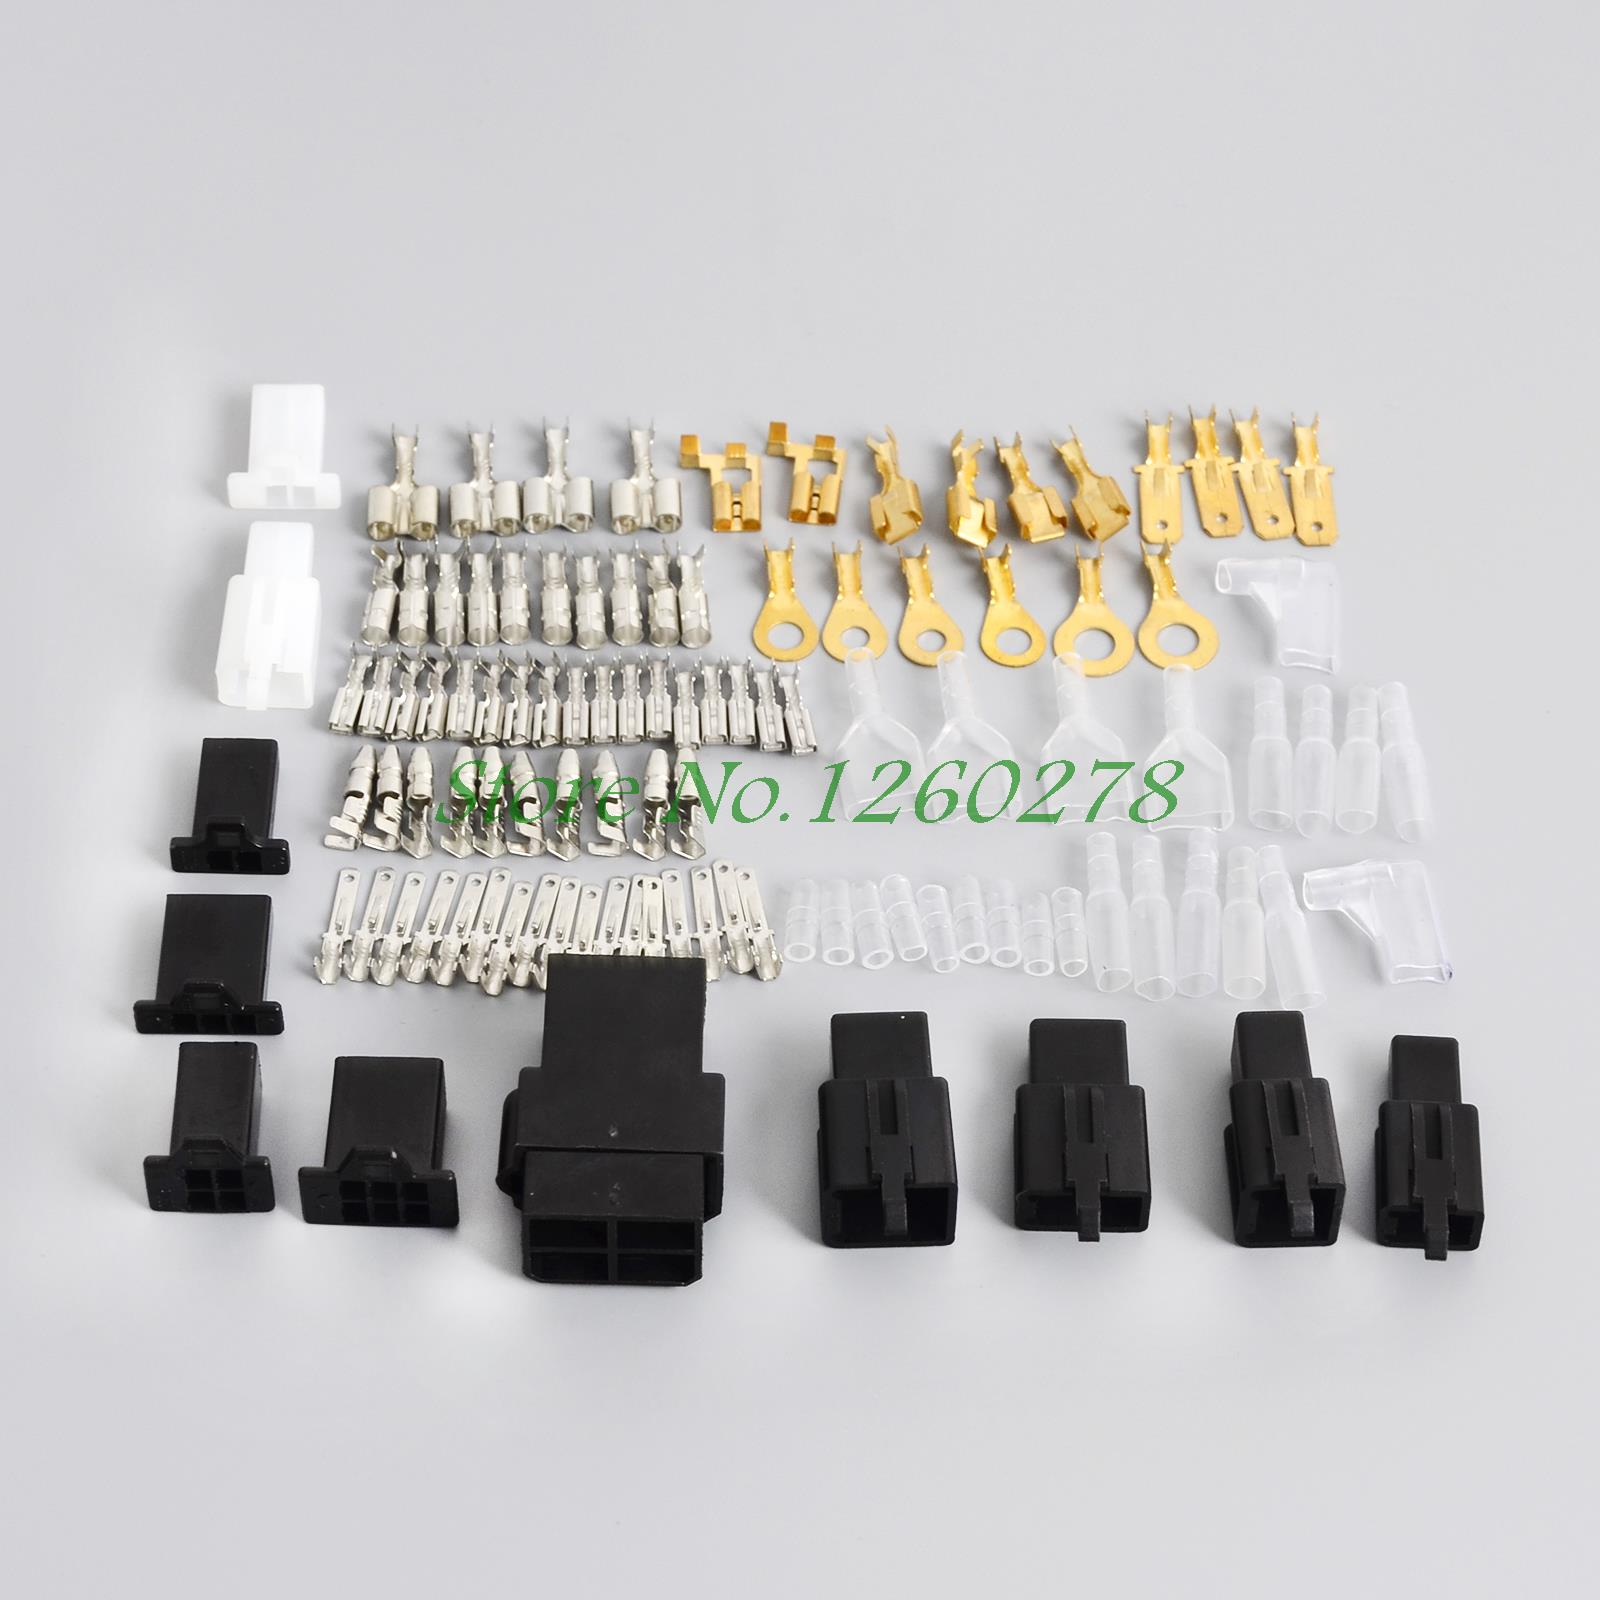 Universal Motorcycle Electrical Wiring Harness Loom Repair Kit Plugs Bullets For Honda Yamaha Suzuki Kawasaki New universal motorcycle electrical wiring harness loom repair kit universal motorcycle wiring harness at gsmx.co